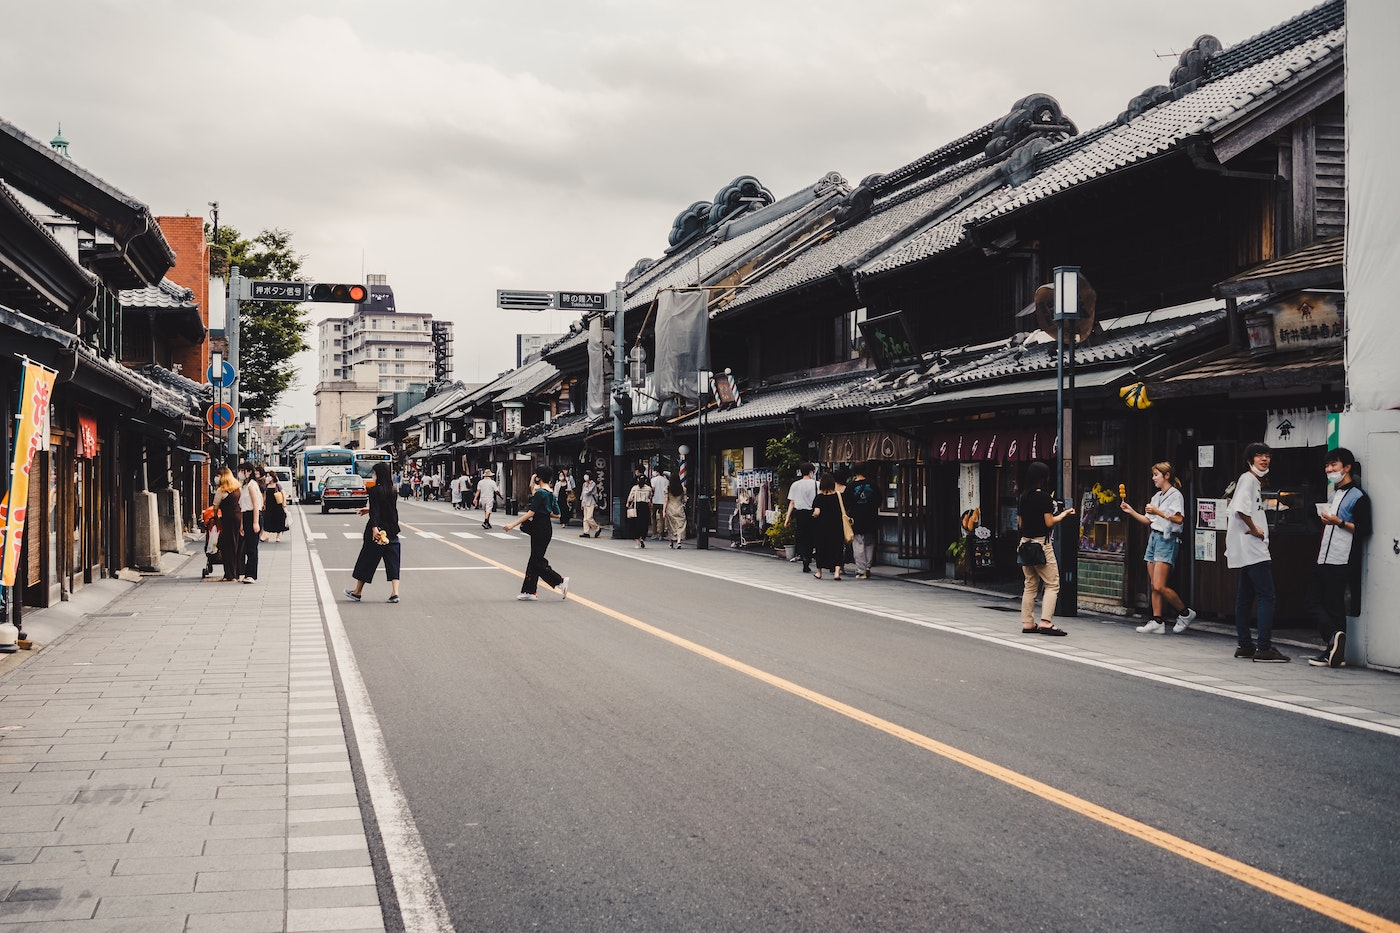 Kawagoe Travel Guide – What to do and see in Little Edo